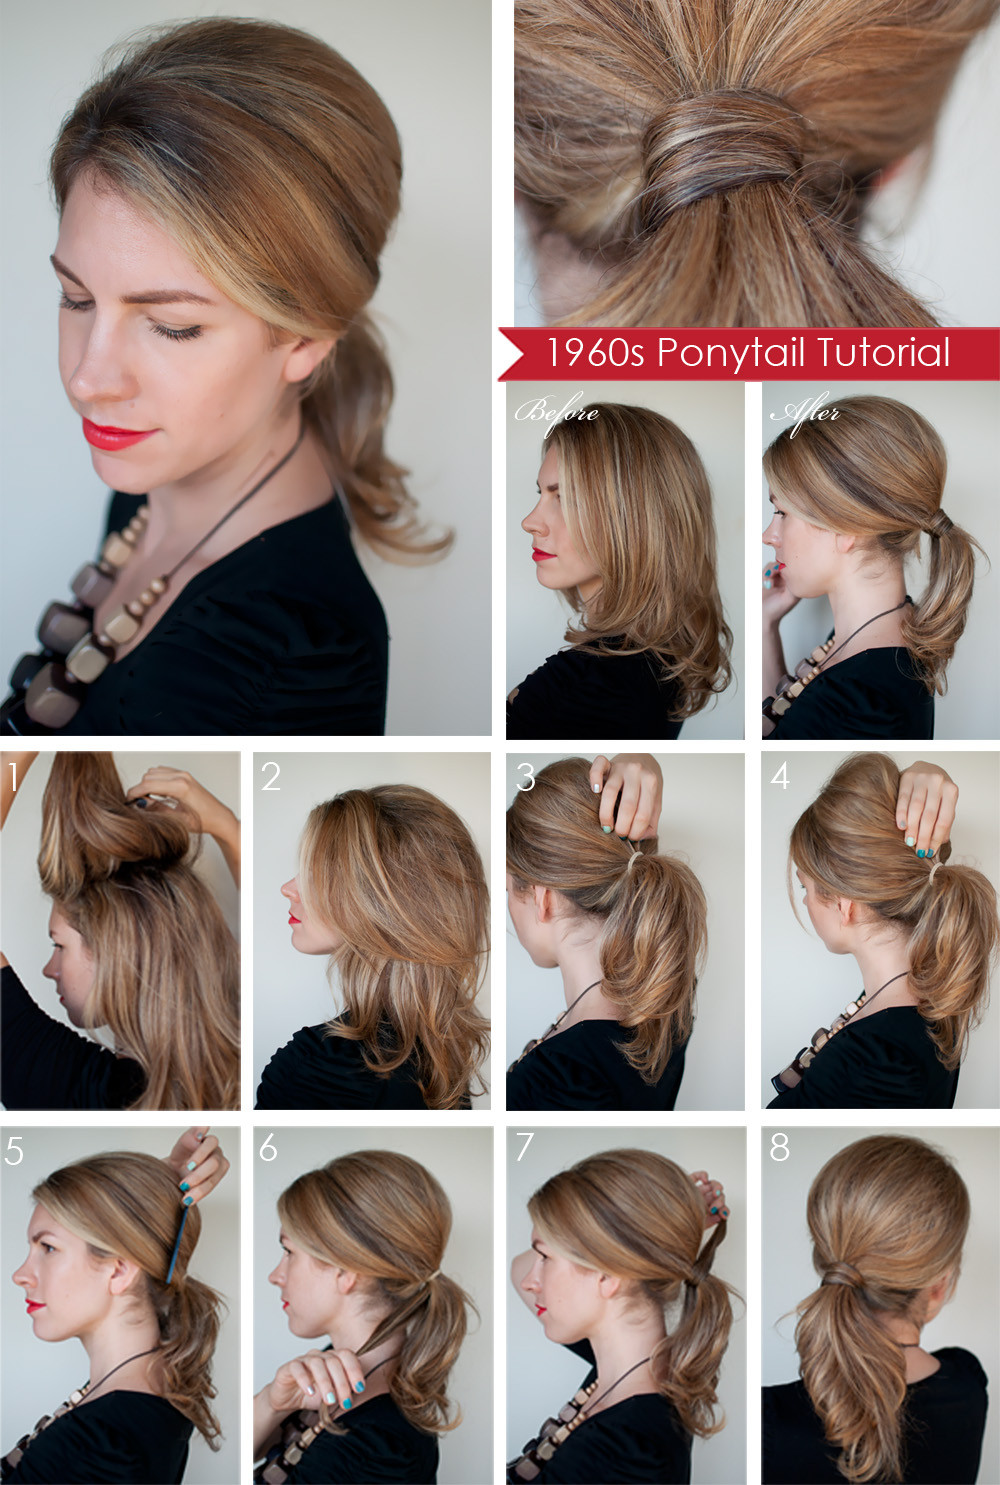 Best ideas about Easy Hairstyle Video . Save or Pin vanity at it s best Easy Hair Style Tutorials Now.